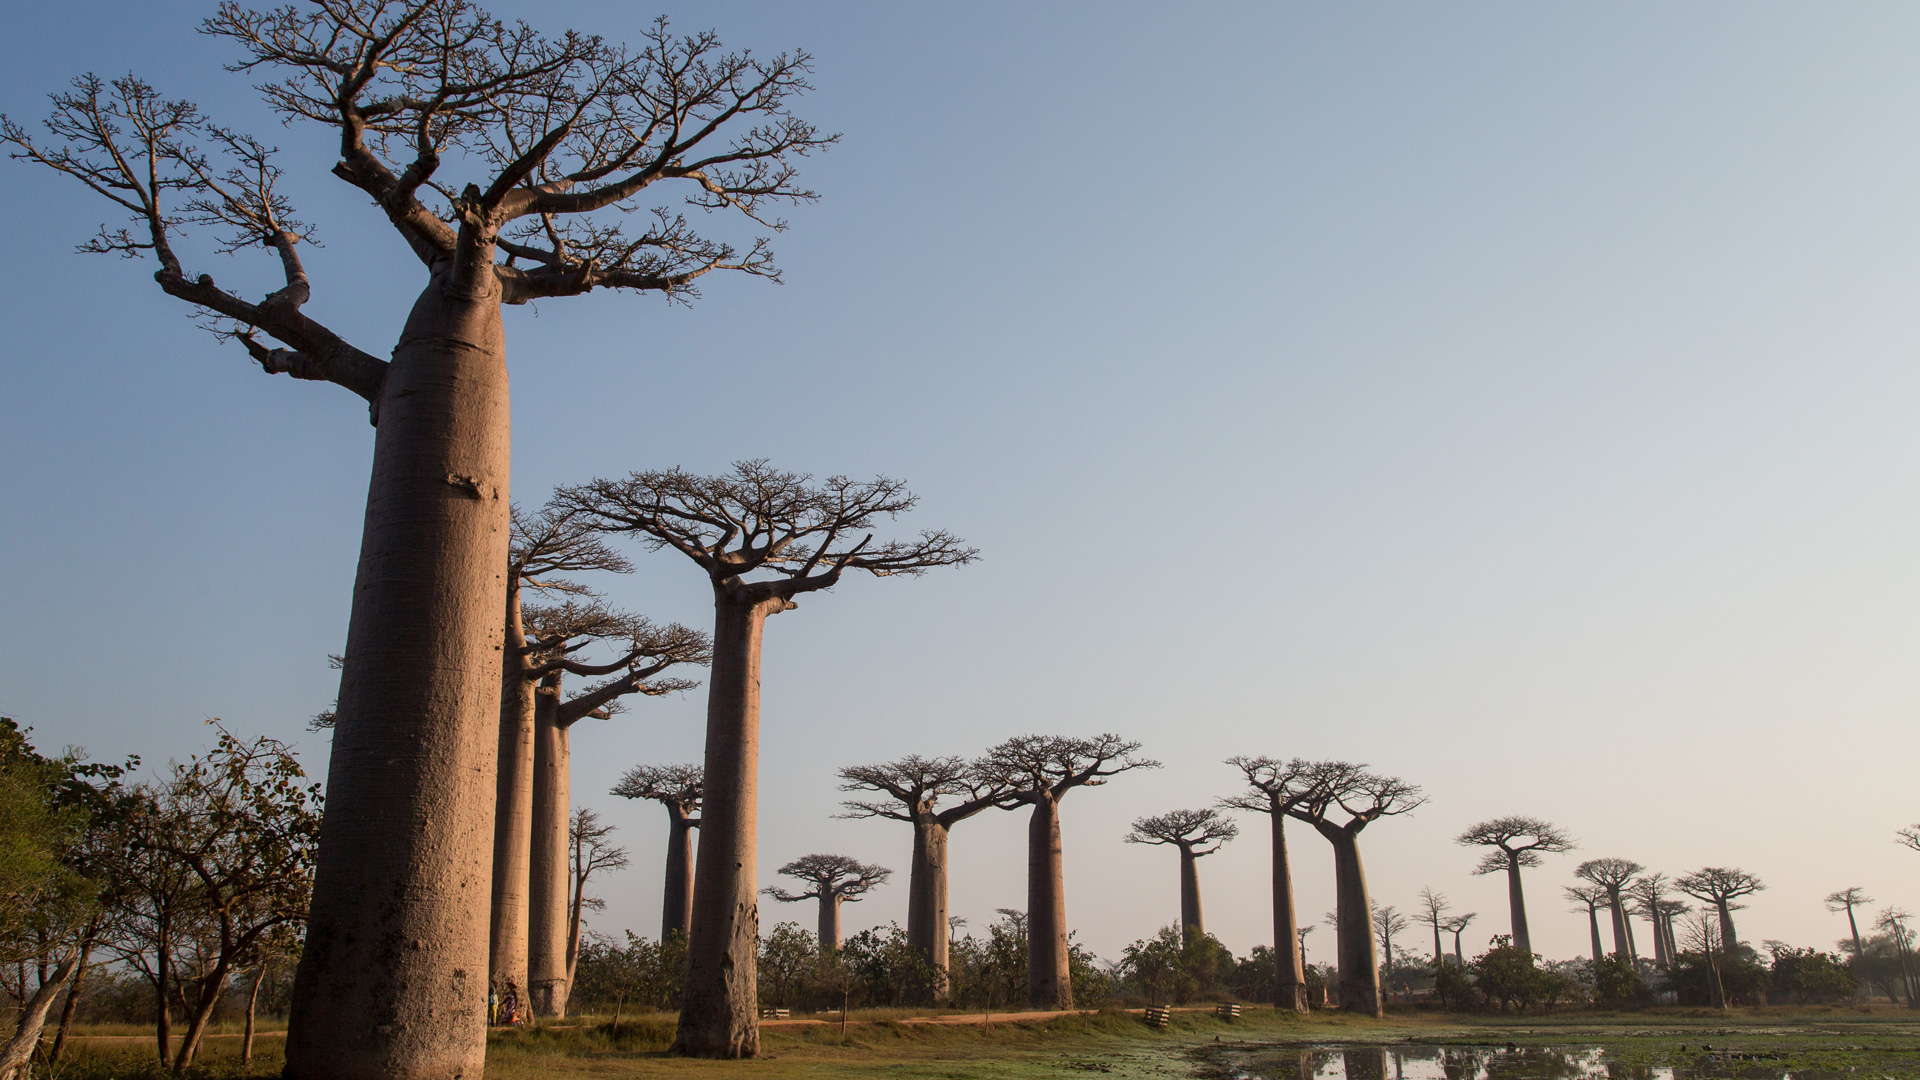 Madagascar by Robin Hoskins - Avenue of Baobabs